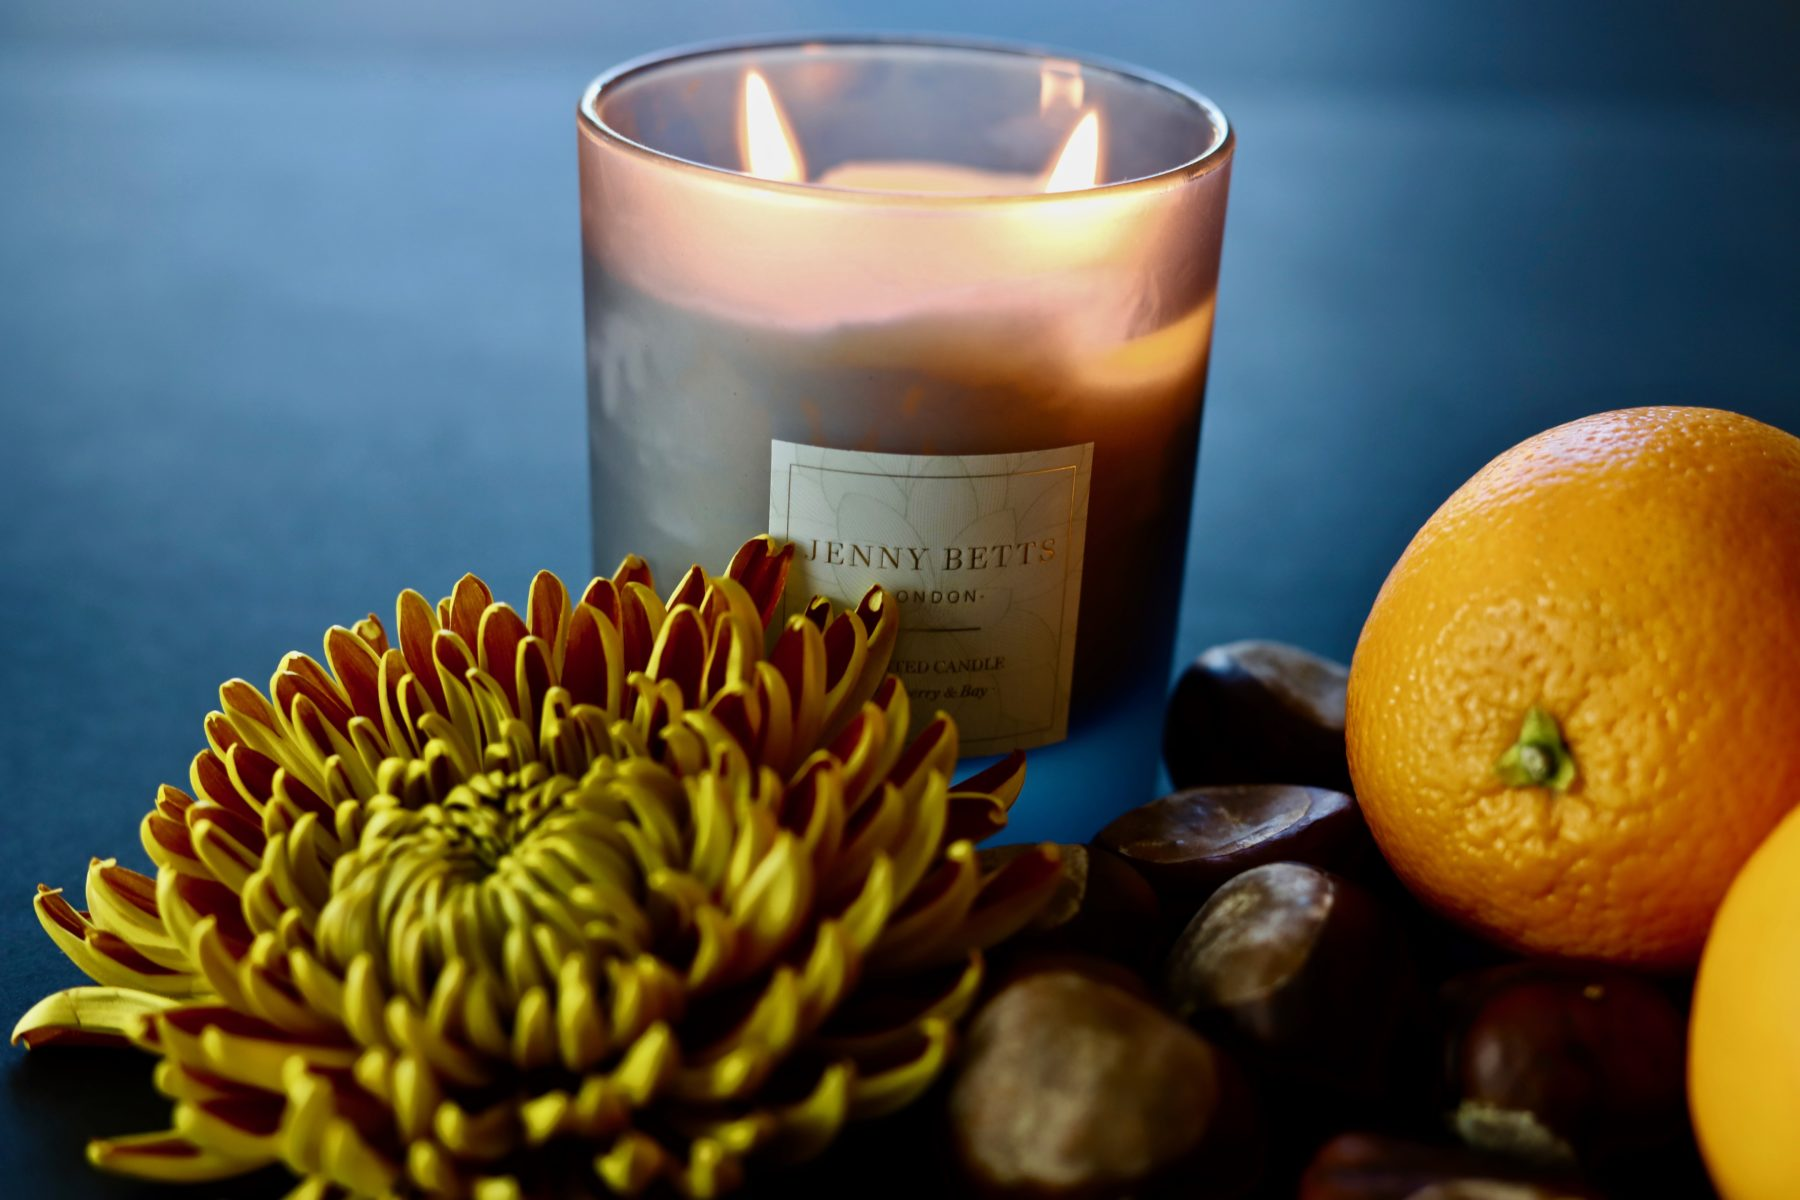 Jenny Betts - Offers an exclusive luxury candle subscription service